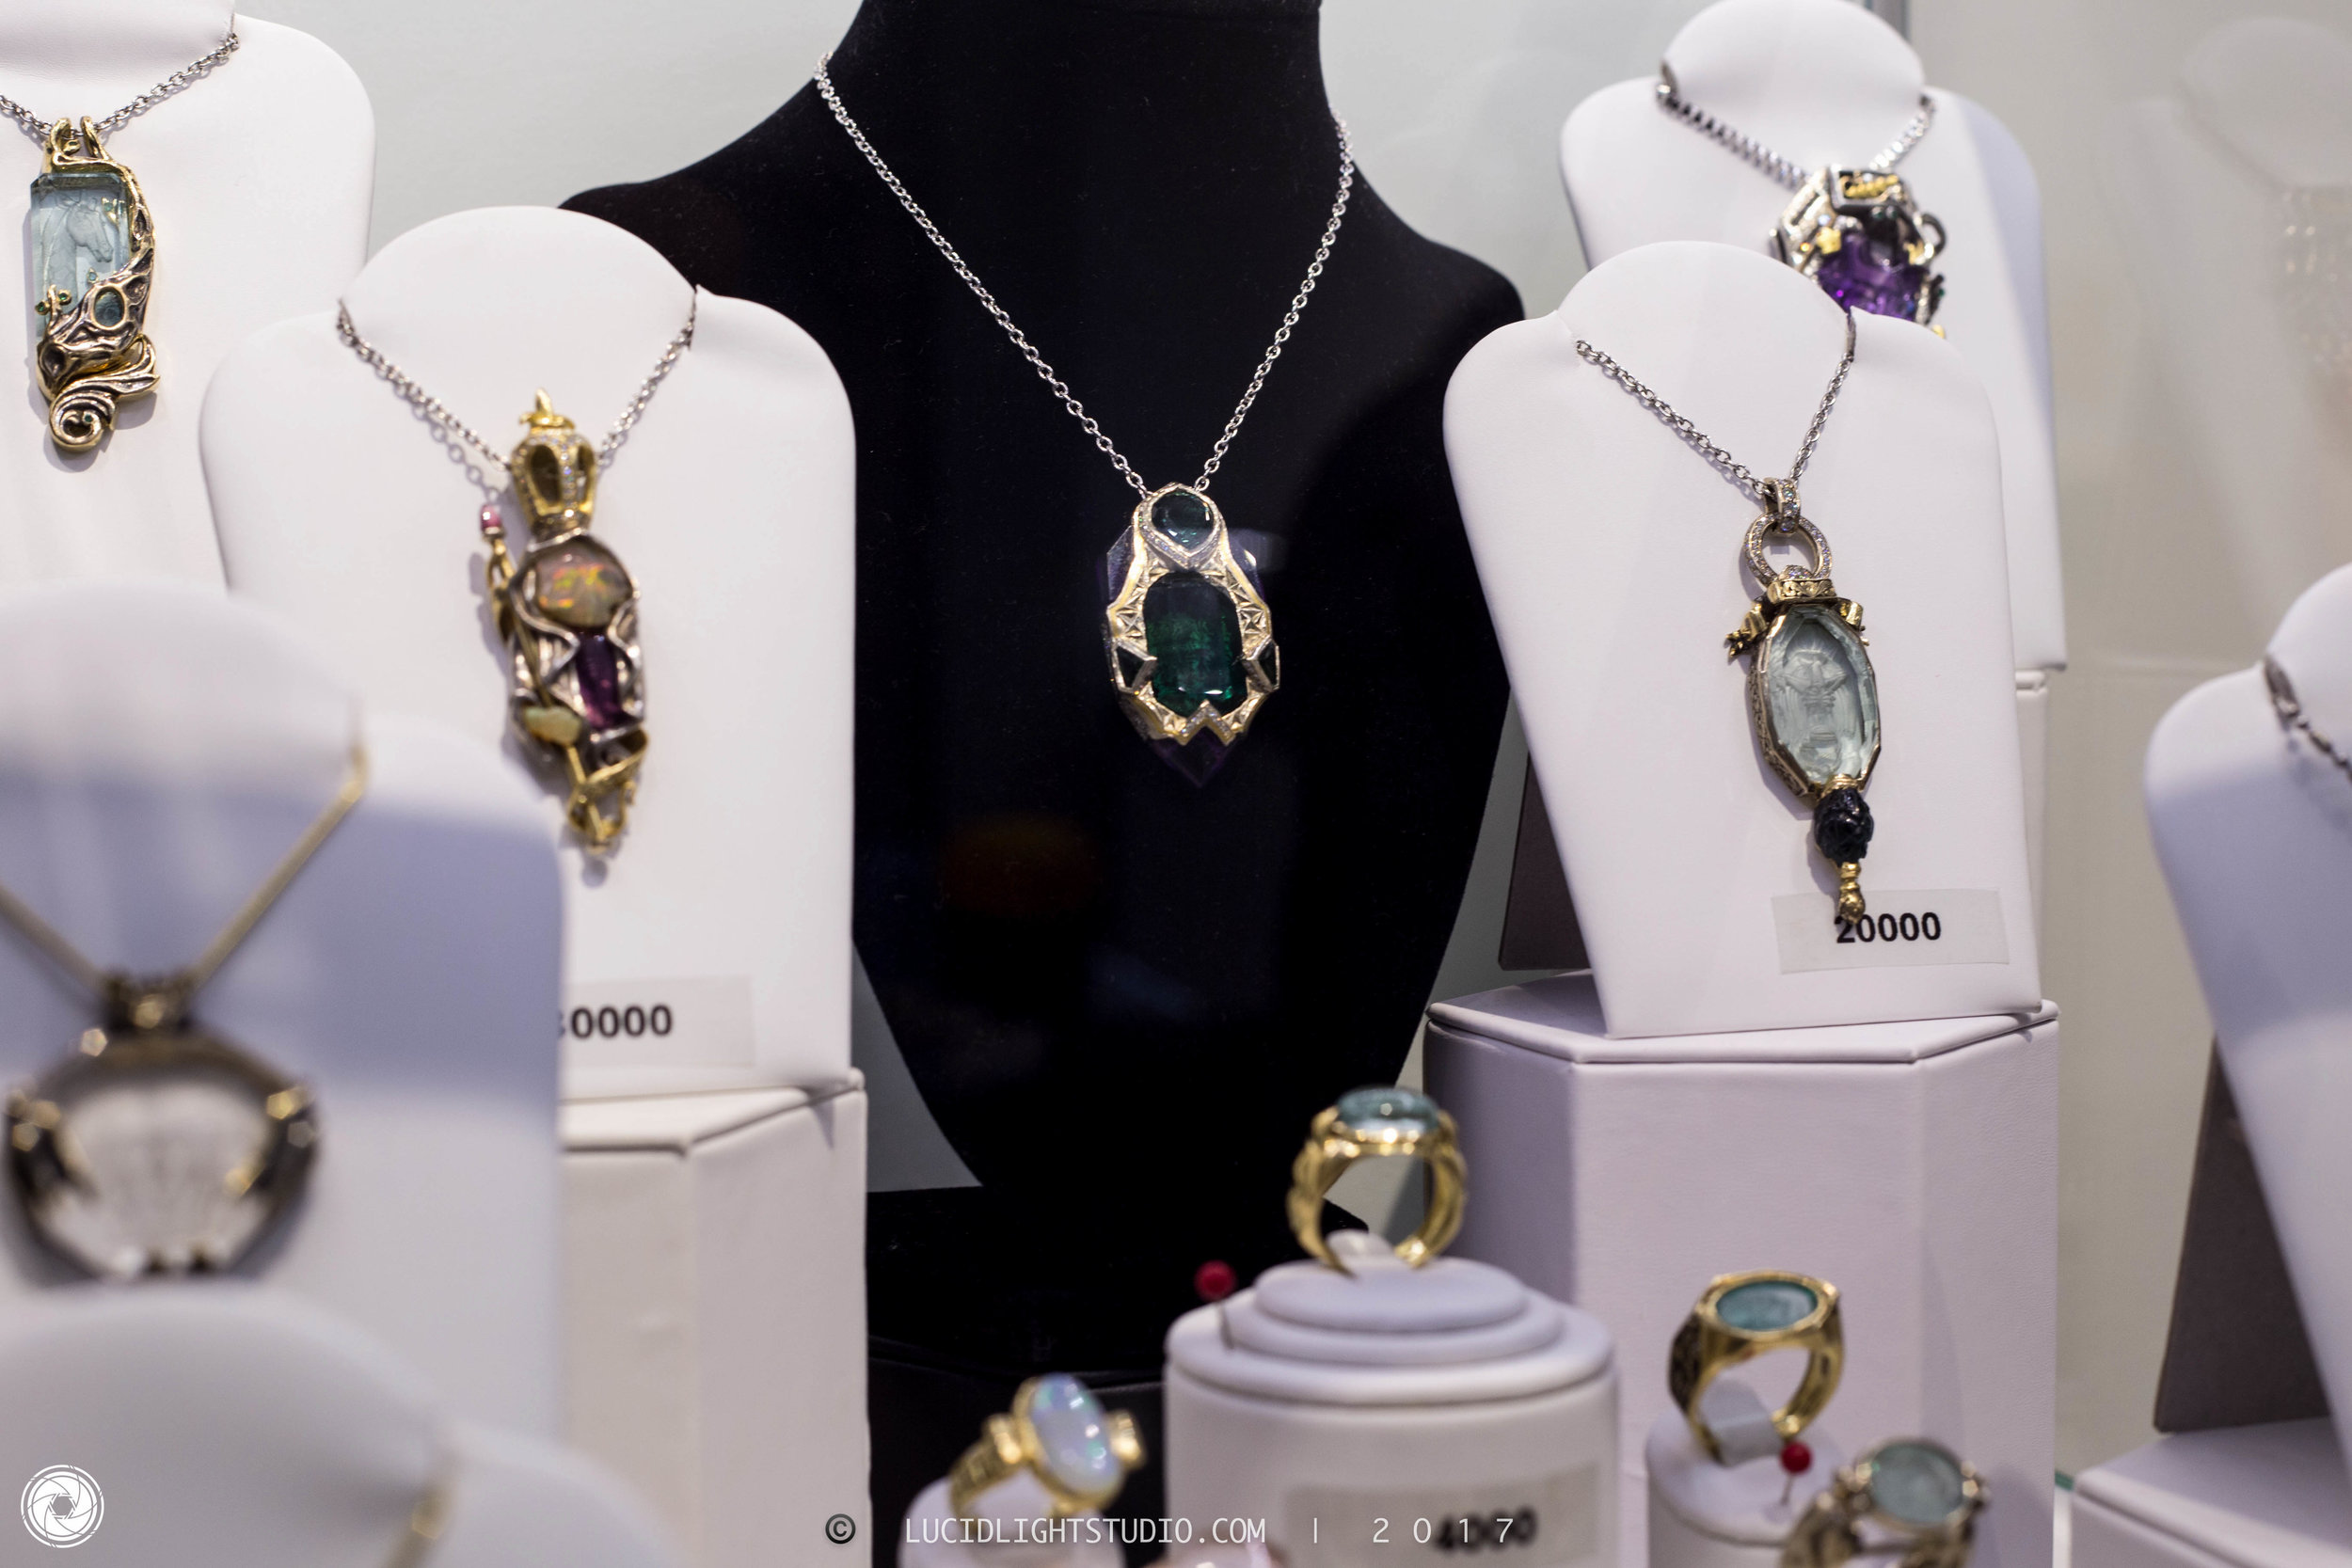 crowncollection2017-16-2.jpg